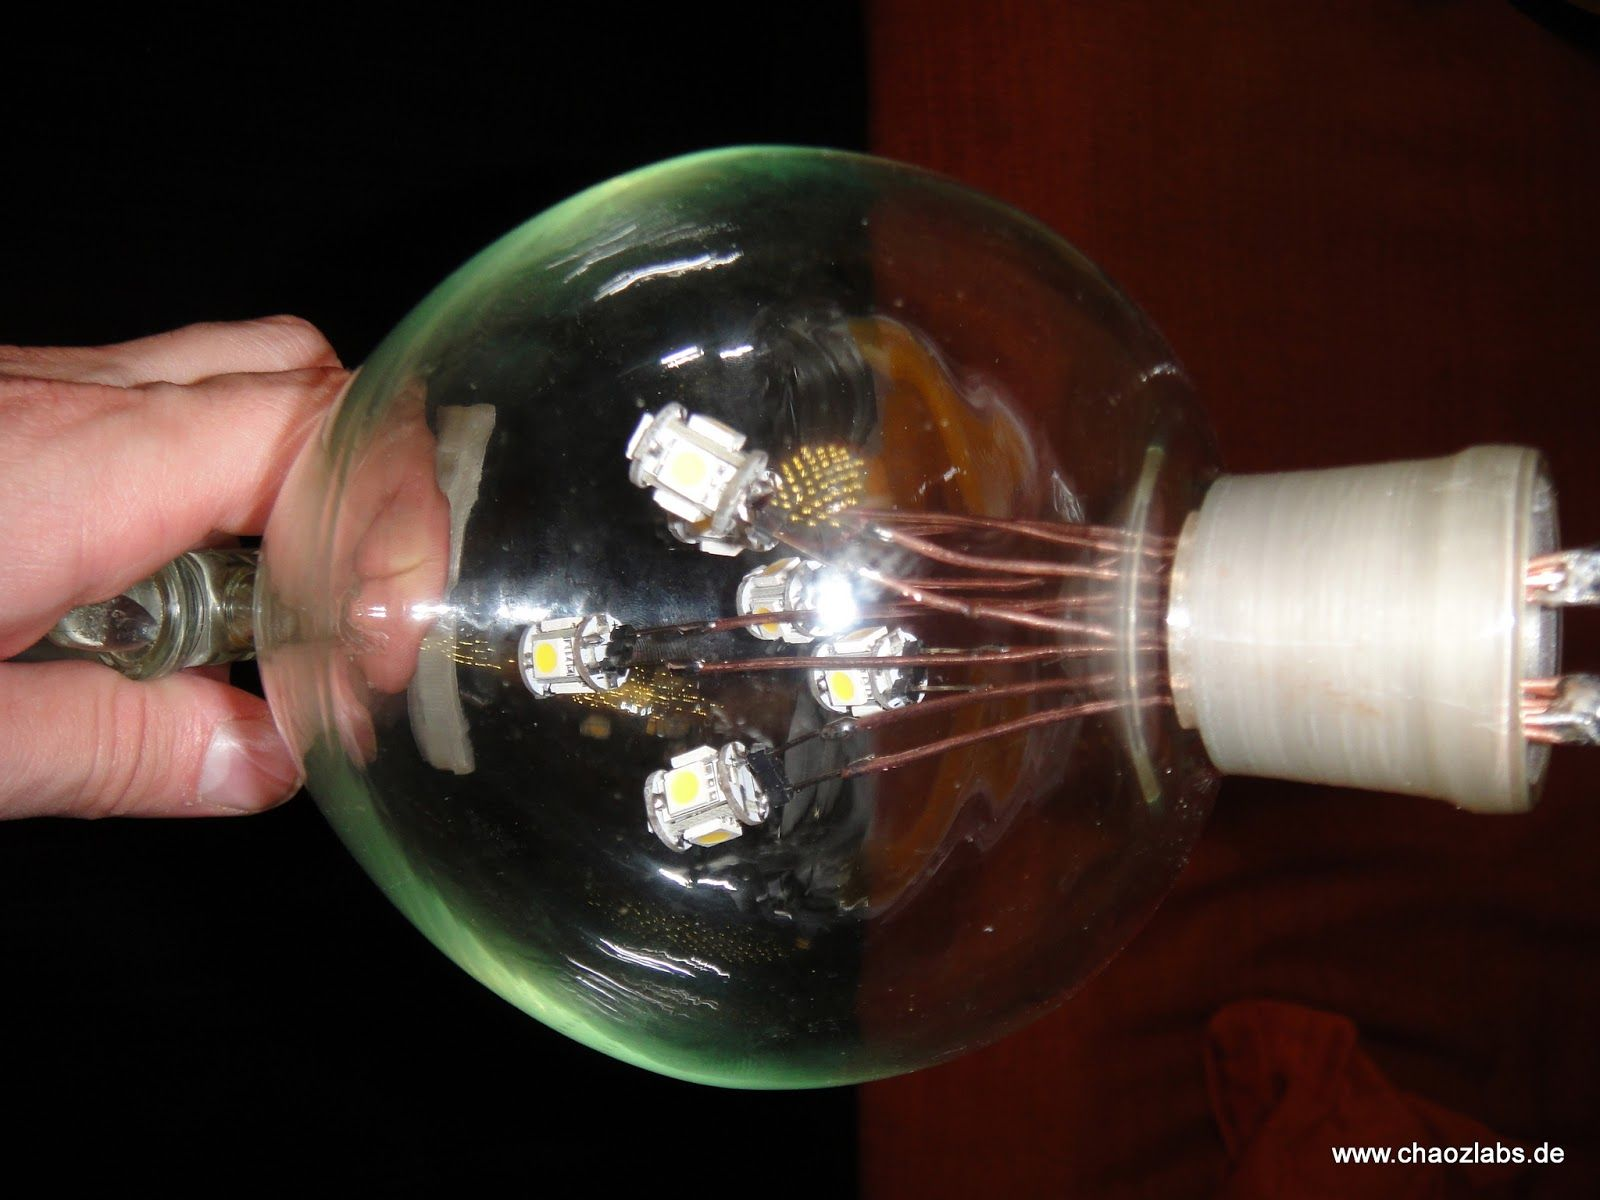 diy light projects | Cool DIY project. Used laboratory ...